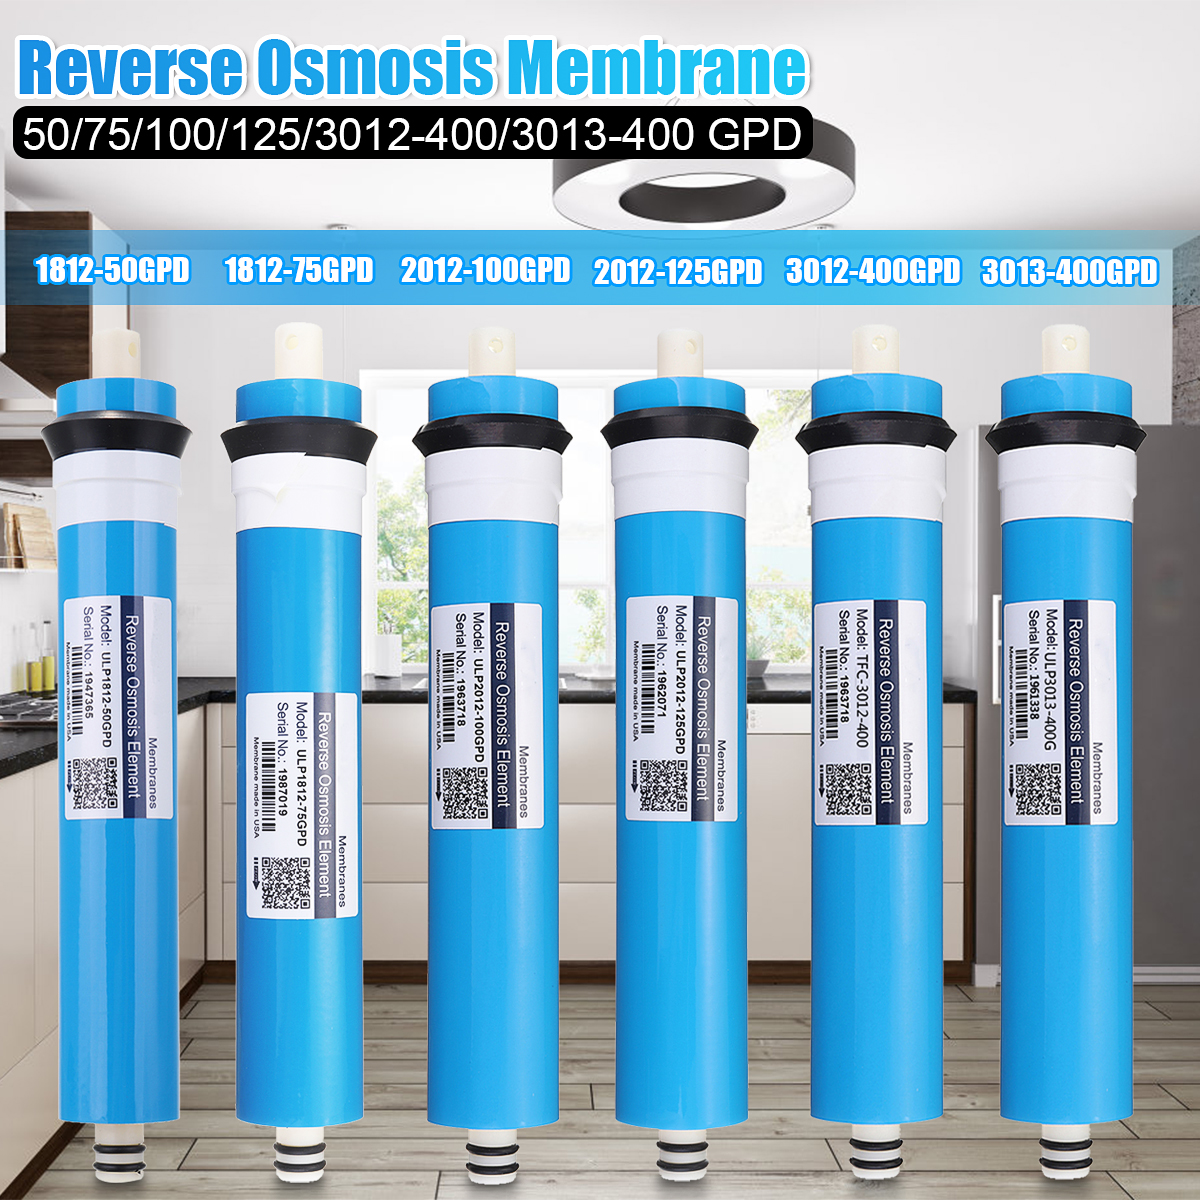 Home 100 GPD RO Membrane Reverse Osmosis Replacement Water System Filter Purification Water Filtration Reduce Bacteria Kitchen